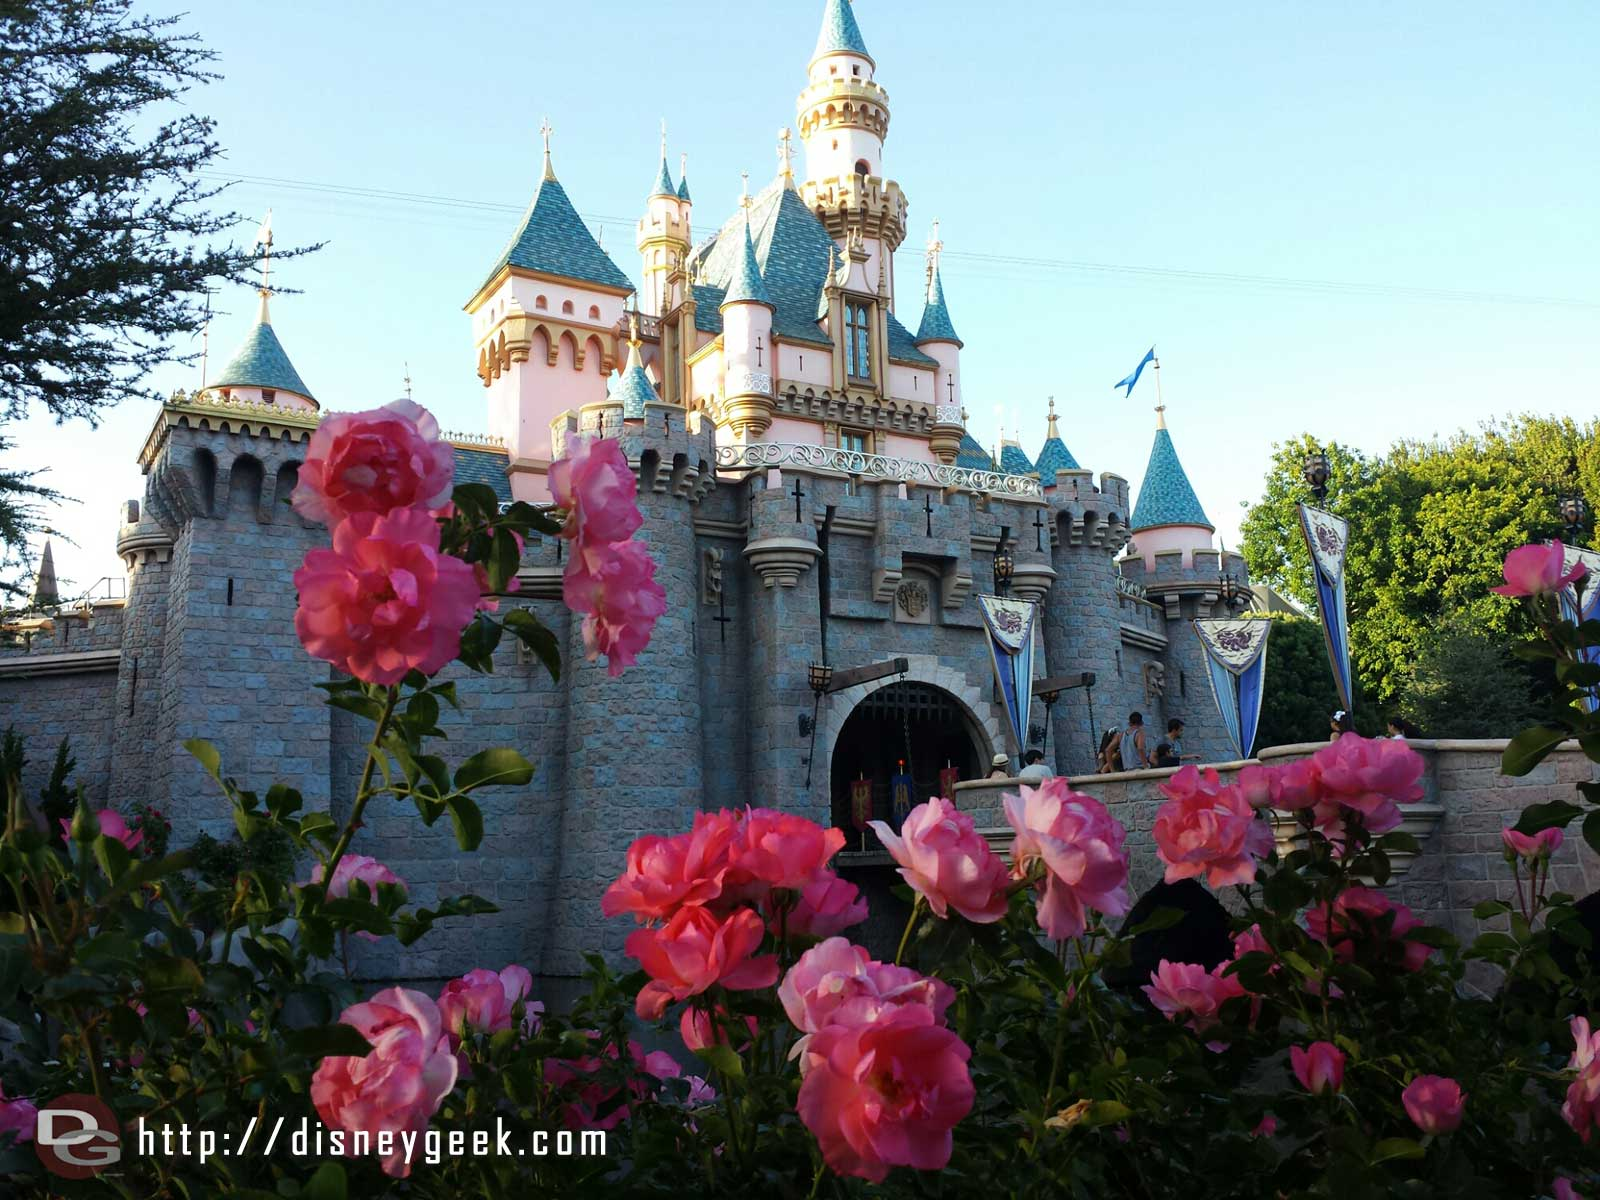 Sleeping Beauty Castle with roses #Disneyland